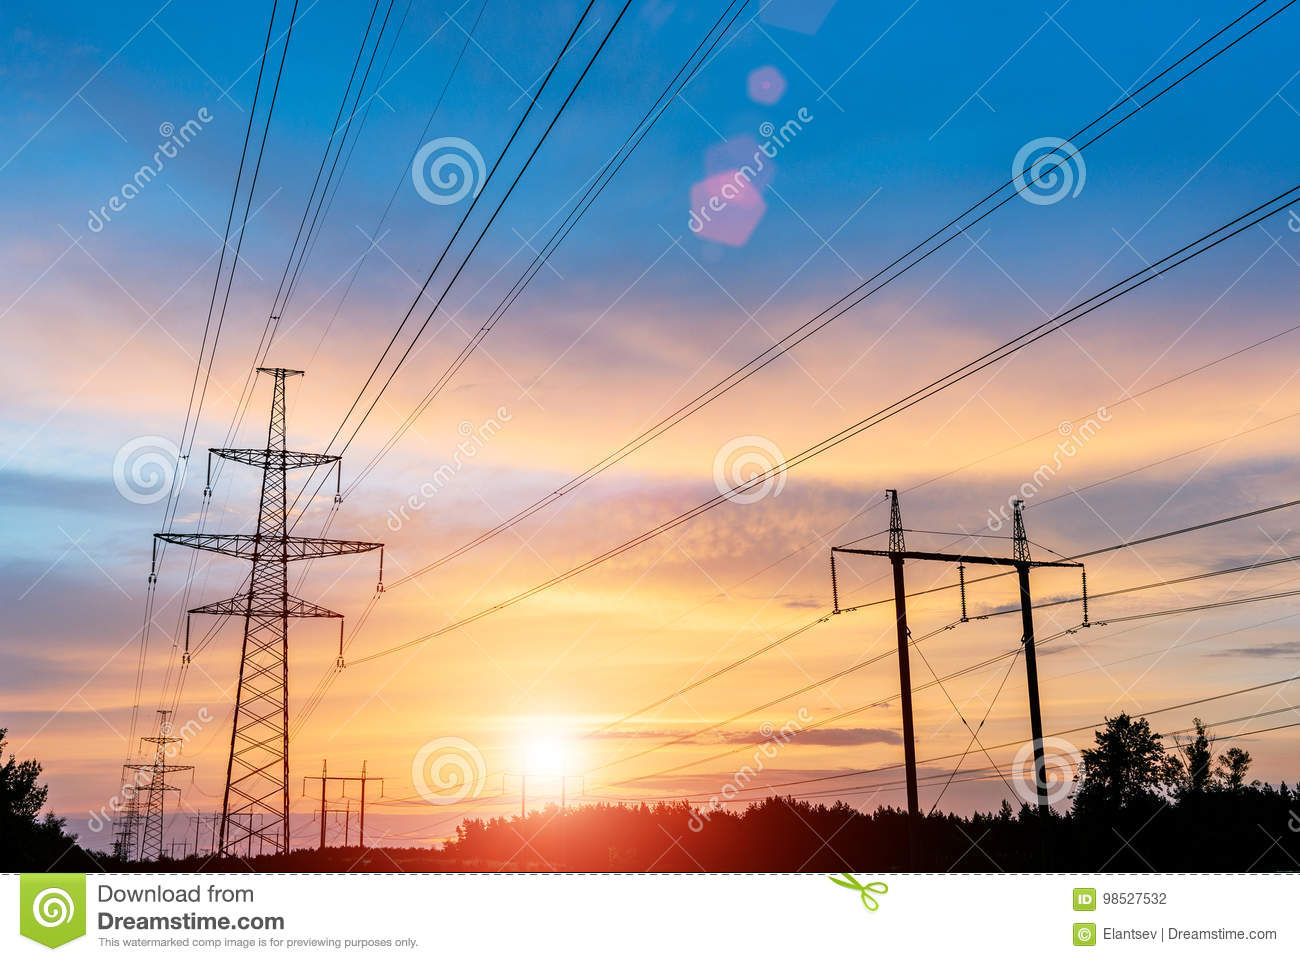 Electricity transmission pylon silhouetted against blue sky. high voltage post.